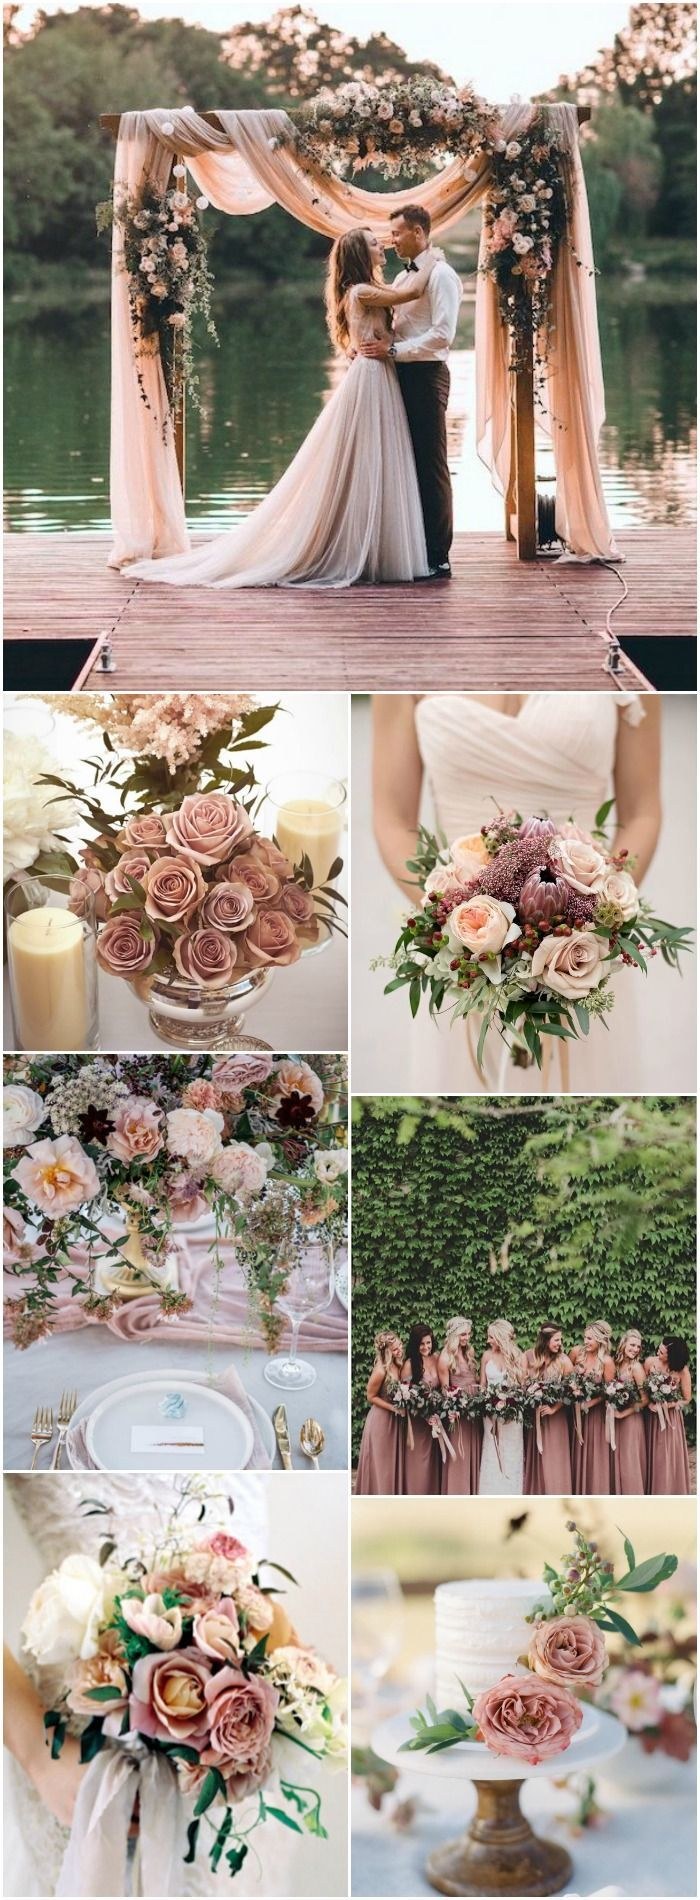 Wedding decorations for outside january 2019 Beautiful Dusty Rose Wedding Ideas That Will Take Your Breath Away